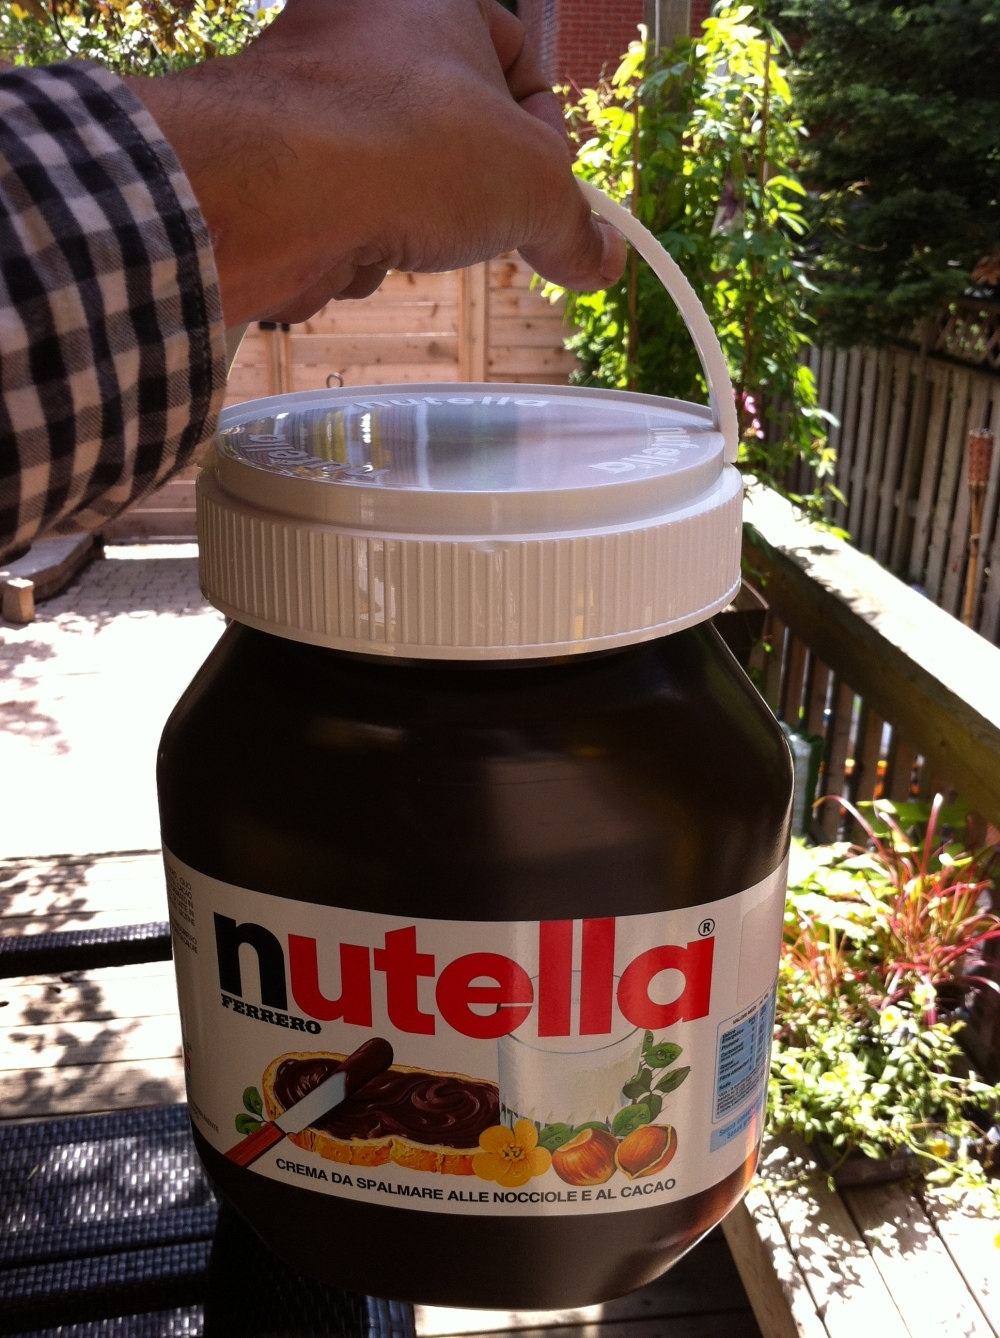 Nutella for giants